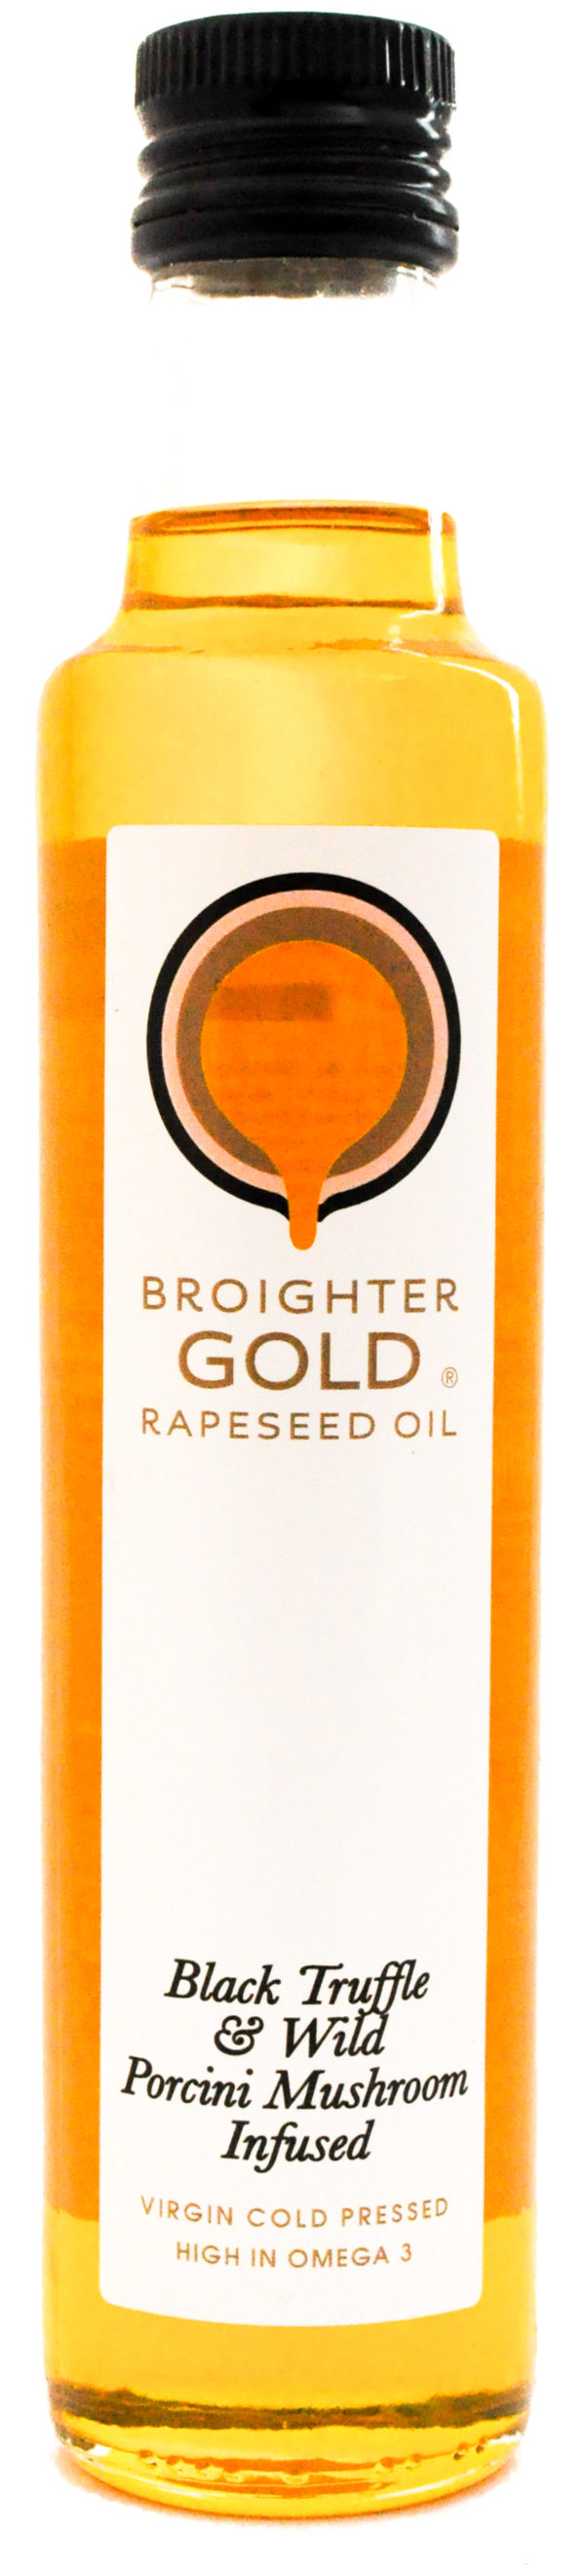 broighter gold   truffle porcini infused oil front 1 scaled